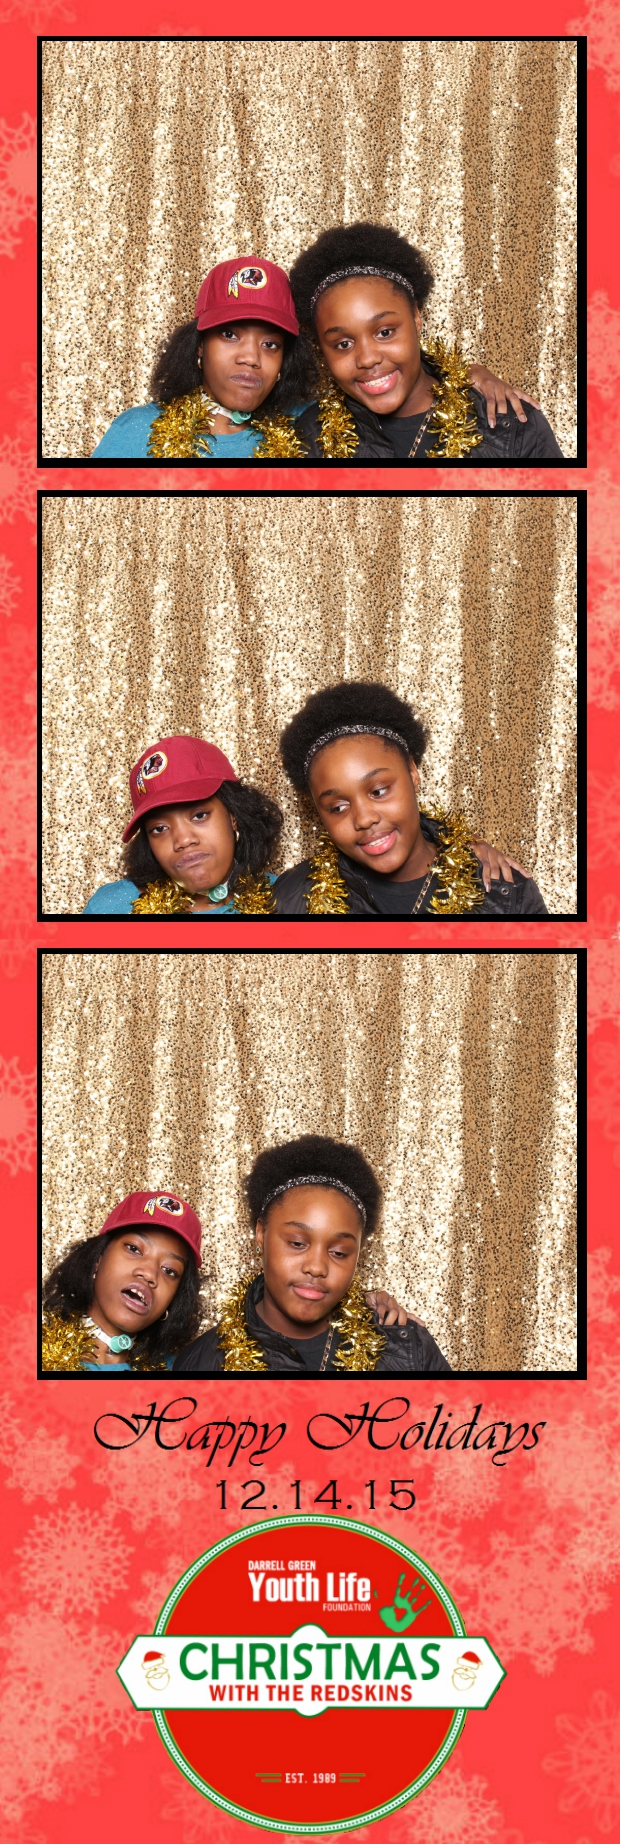 Guest House Events Photo Booth DGYLF Strips (16).jpg